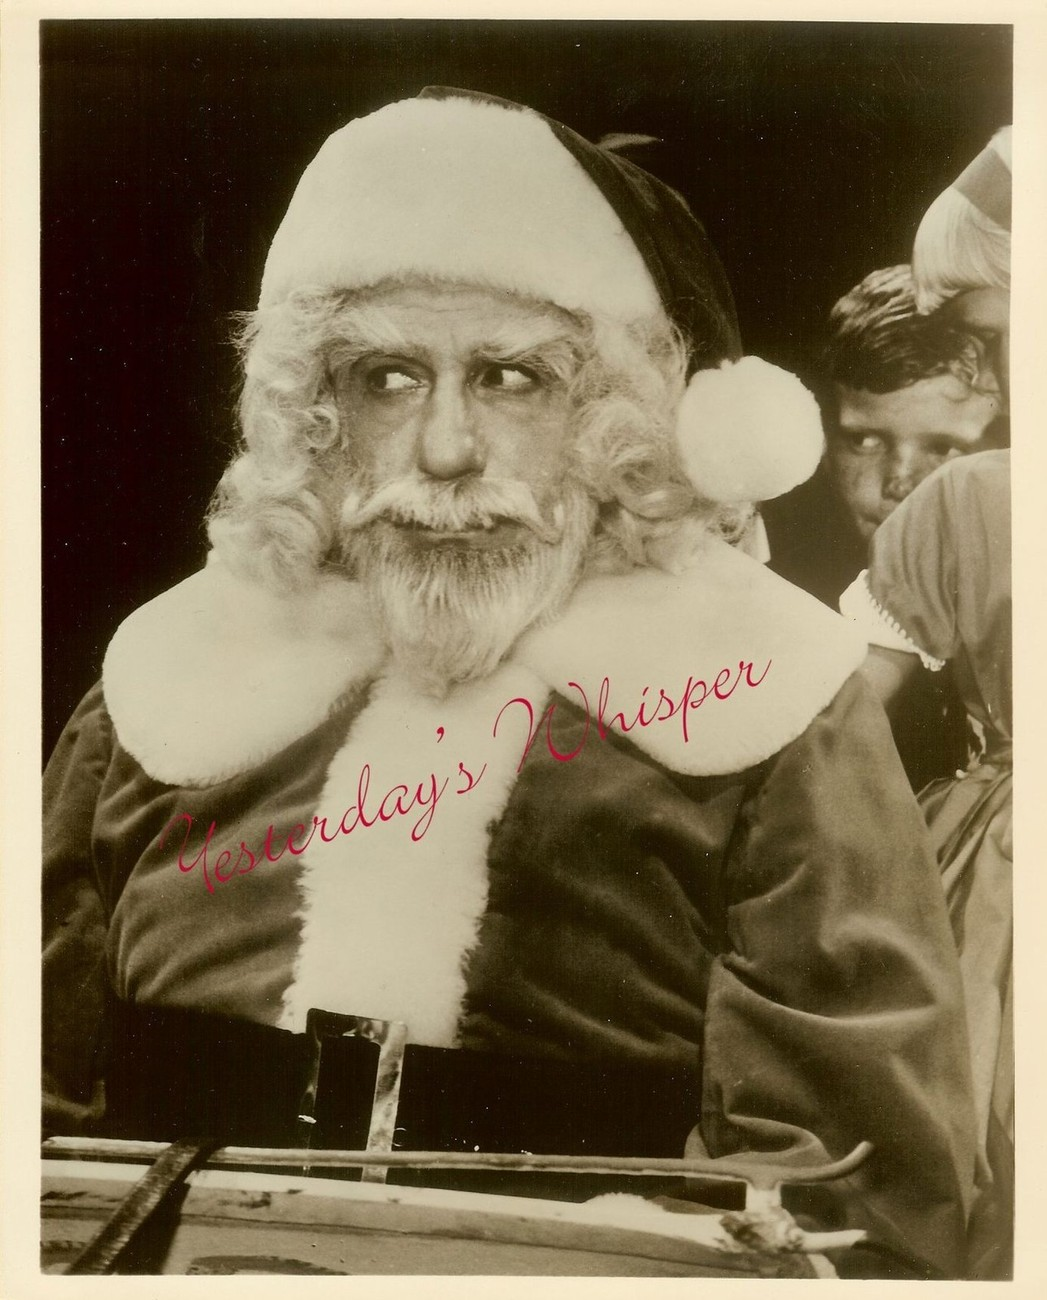 magnificent mitch miller christmas sing along original 1950s tv show photo